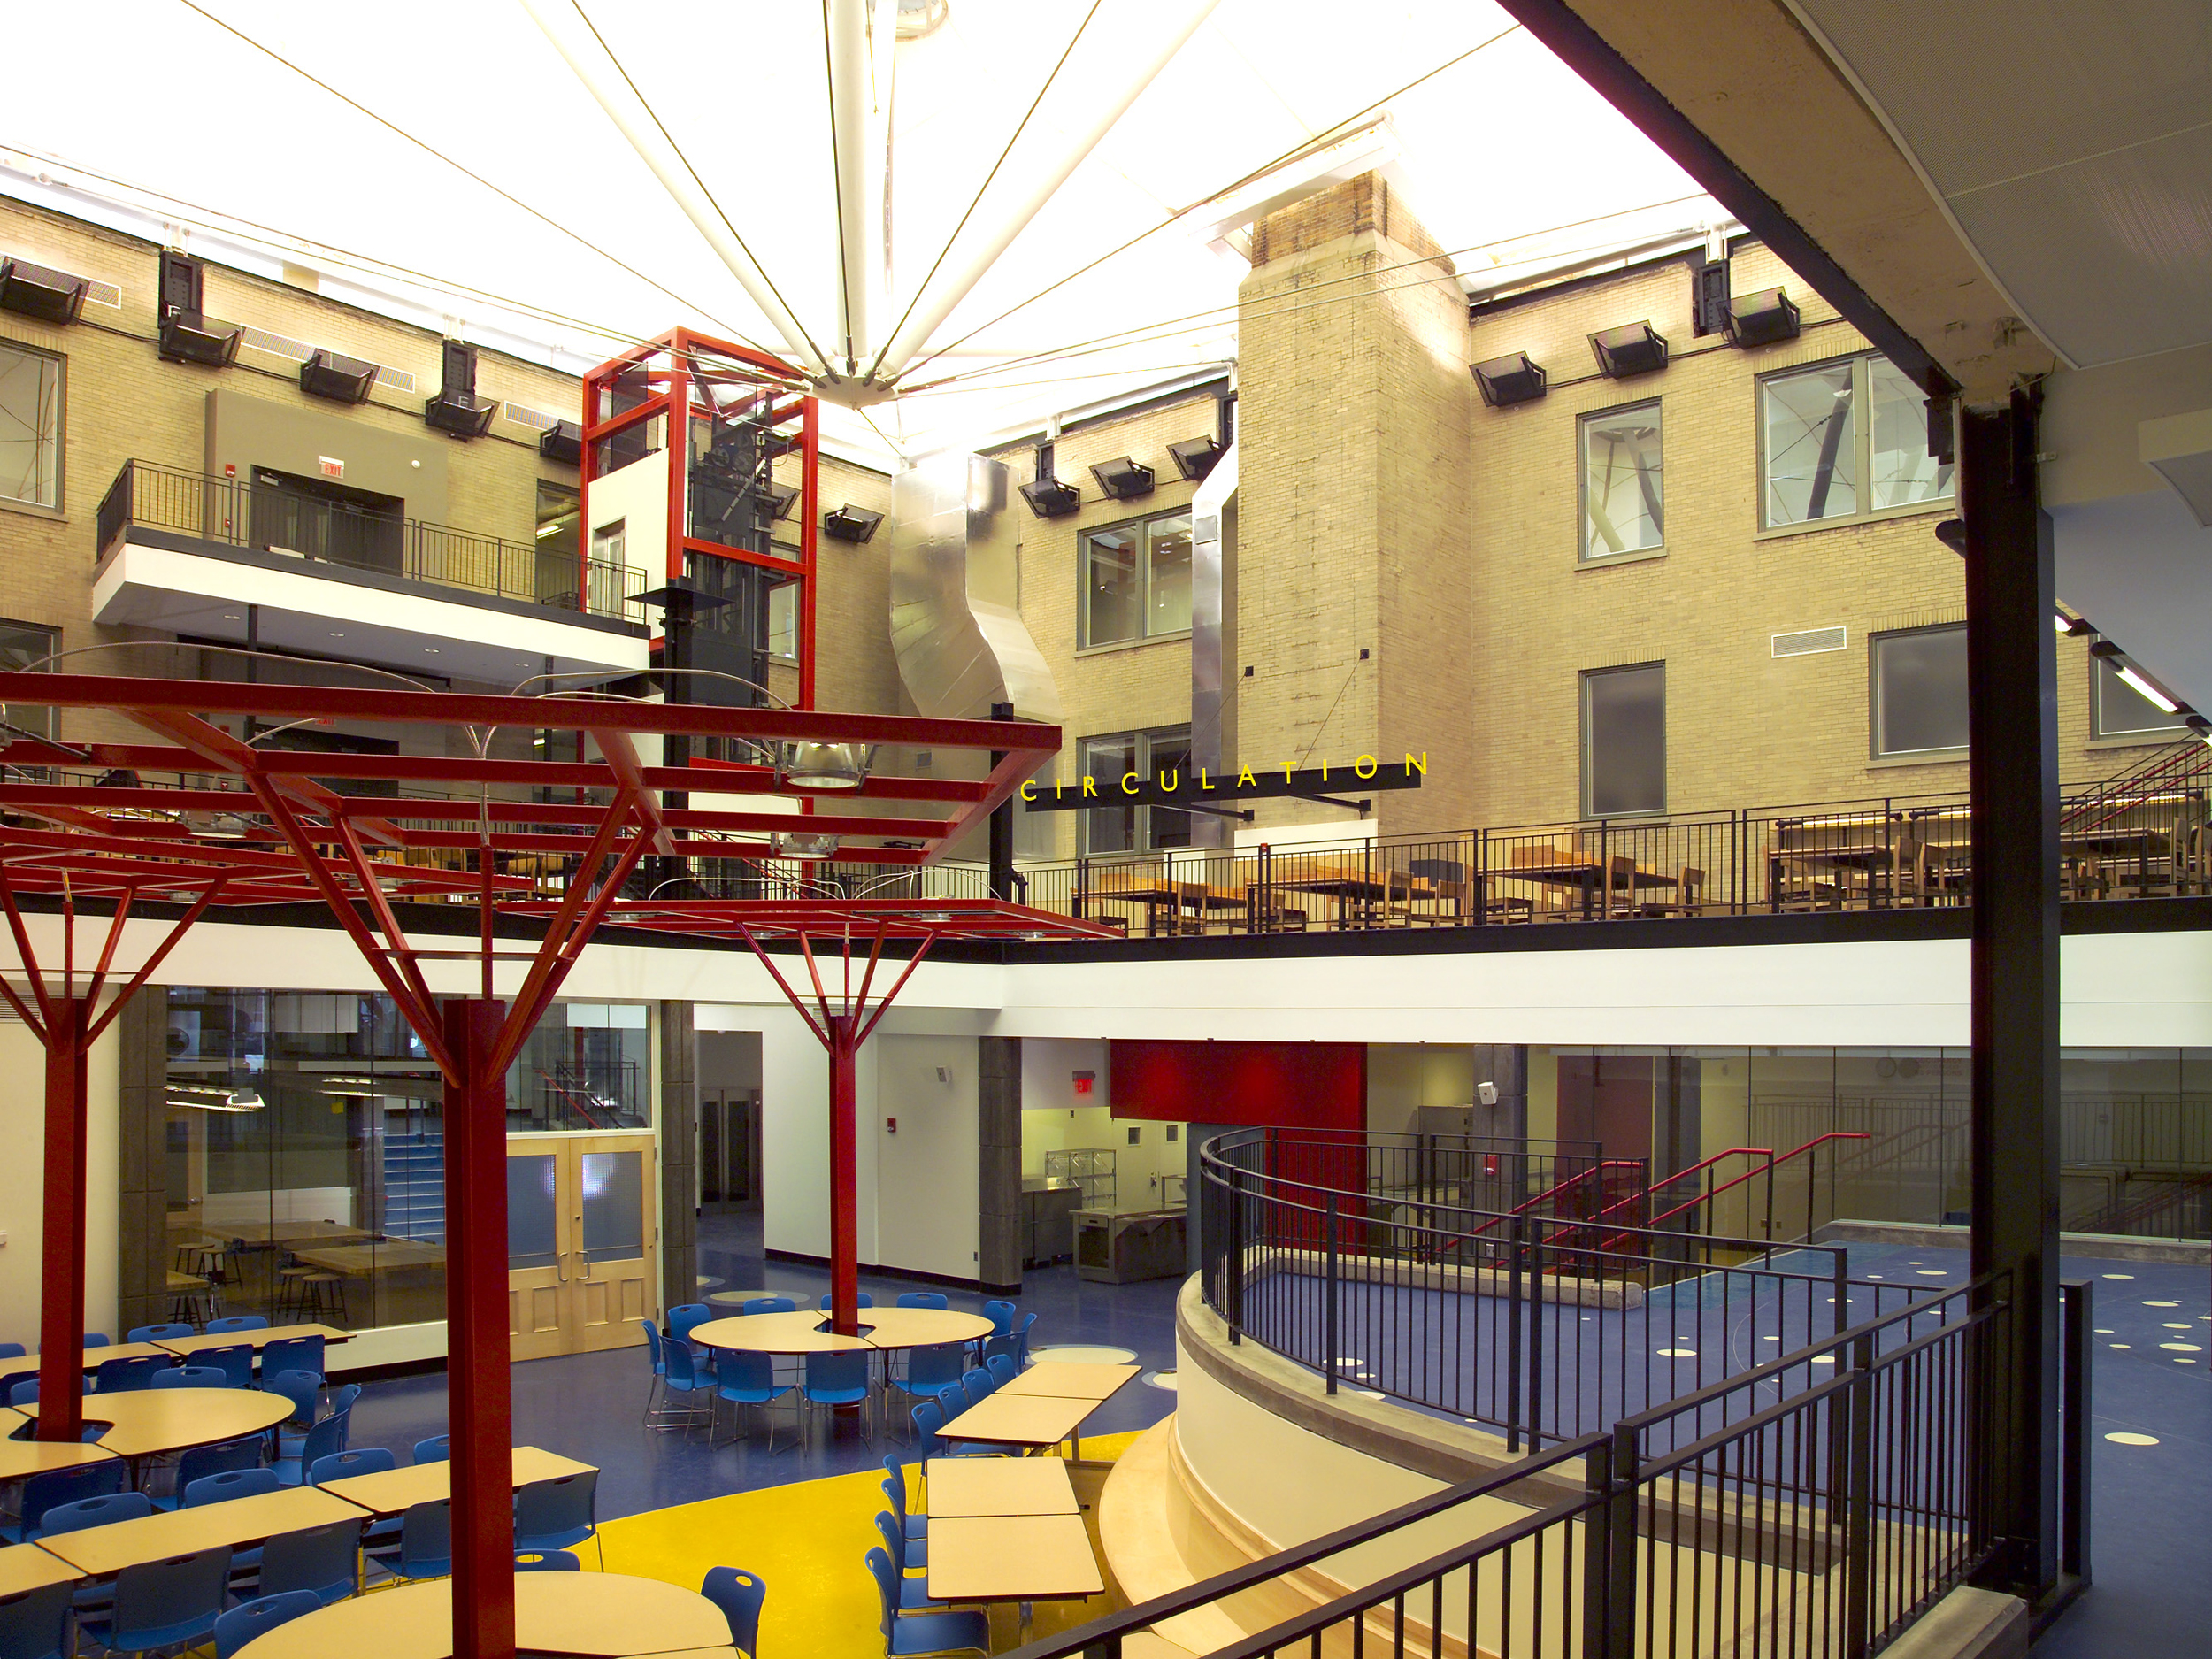 Buffalo public school no 67 discovery school hhl architects - Interior design schools buffalo ny ...